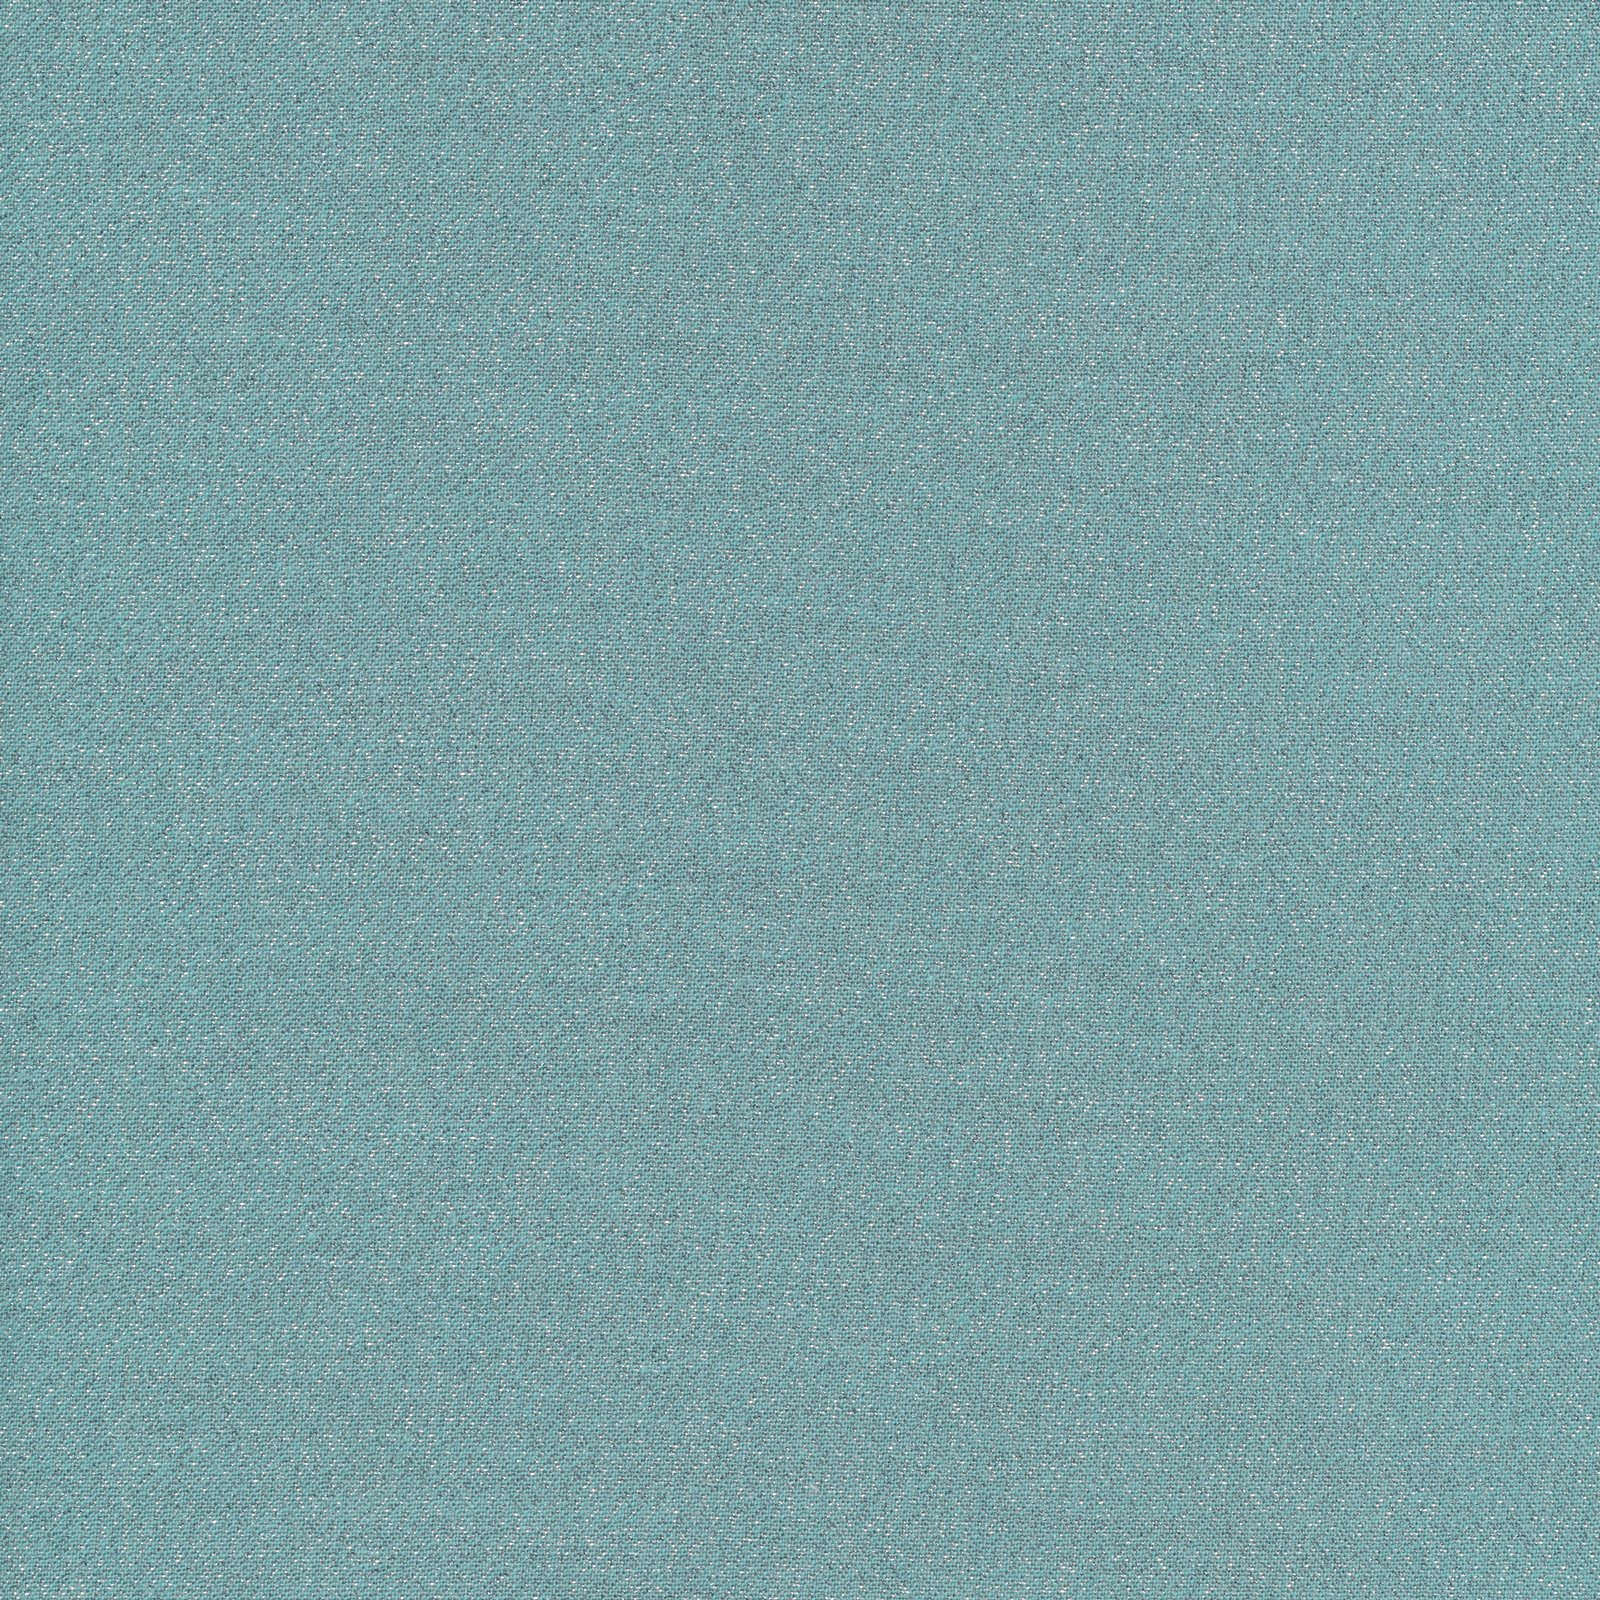 Cloud 9 Glimmer Solids 9007 Mineral $11.50/yd